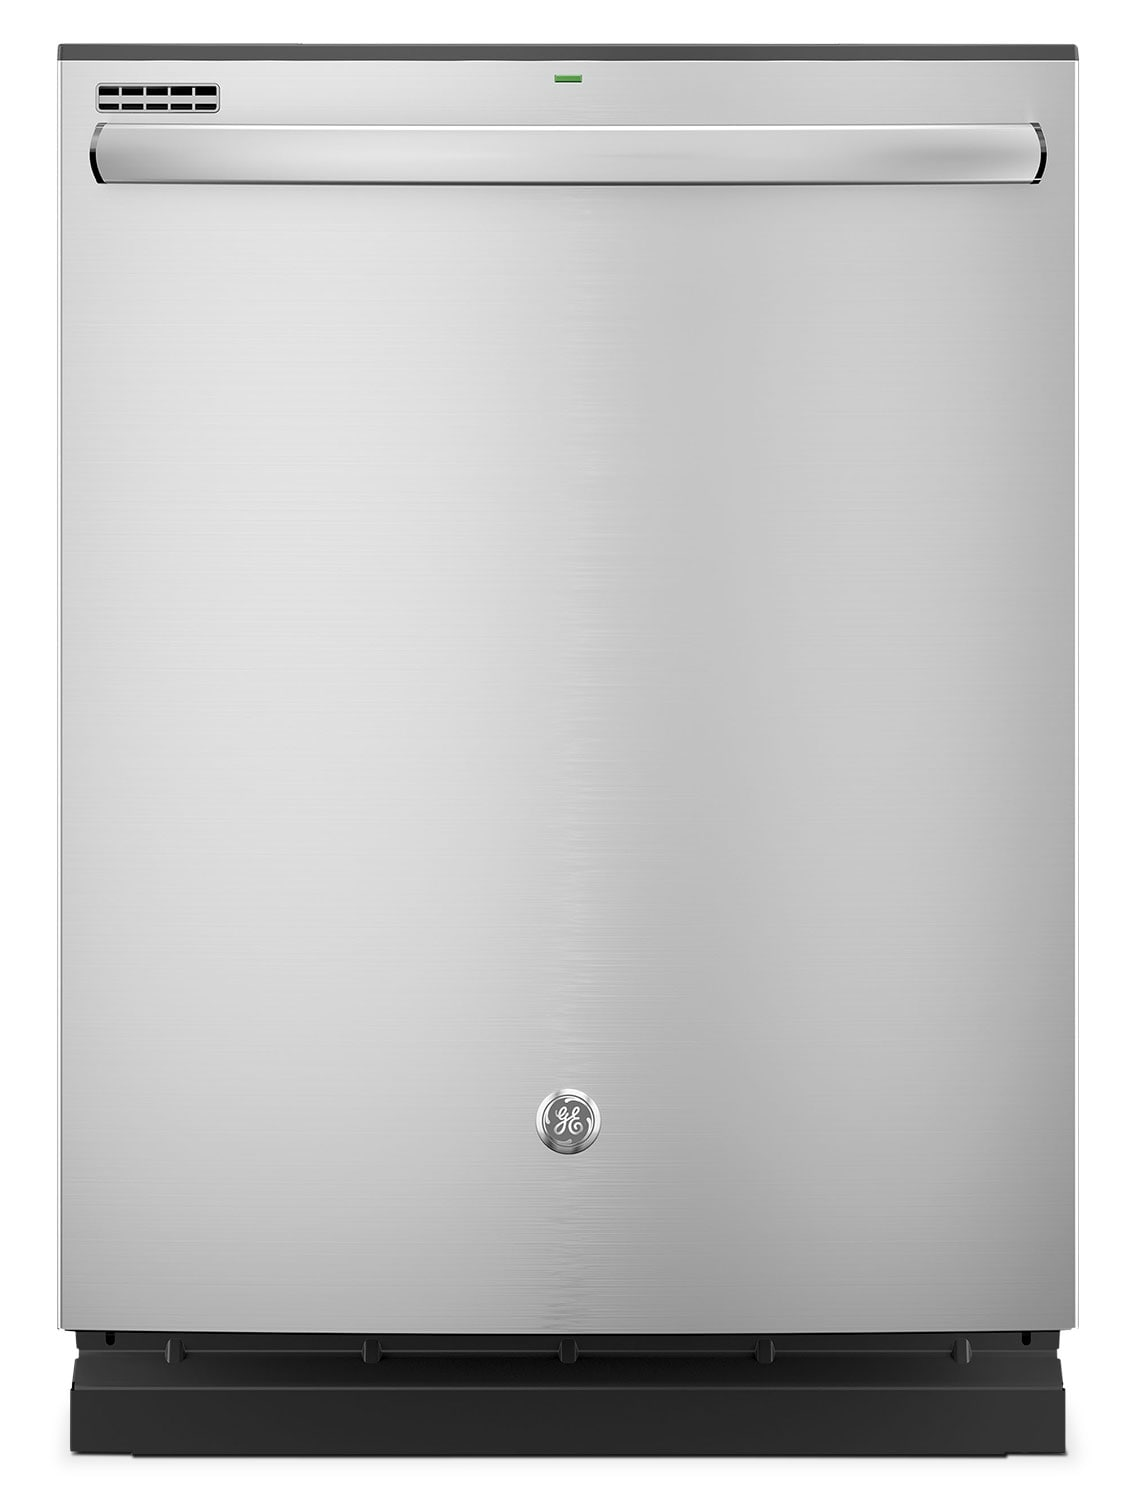 Clean-Up - GE Tall-Tub Dishwasher with Hidden Controls – GDT545PSJSS